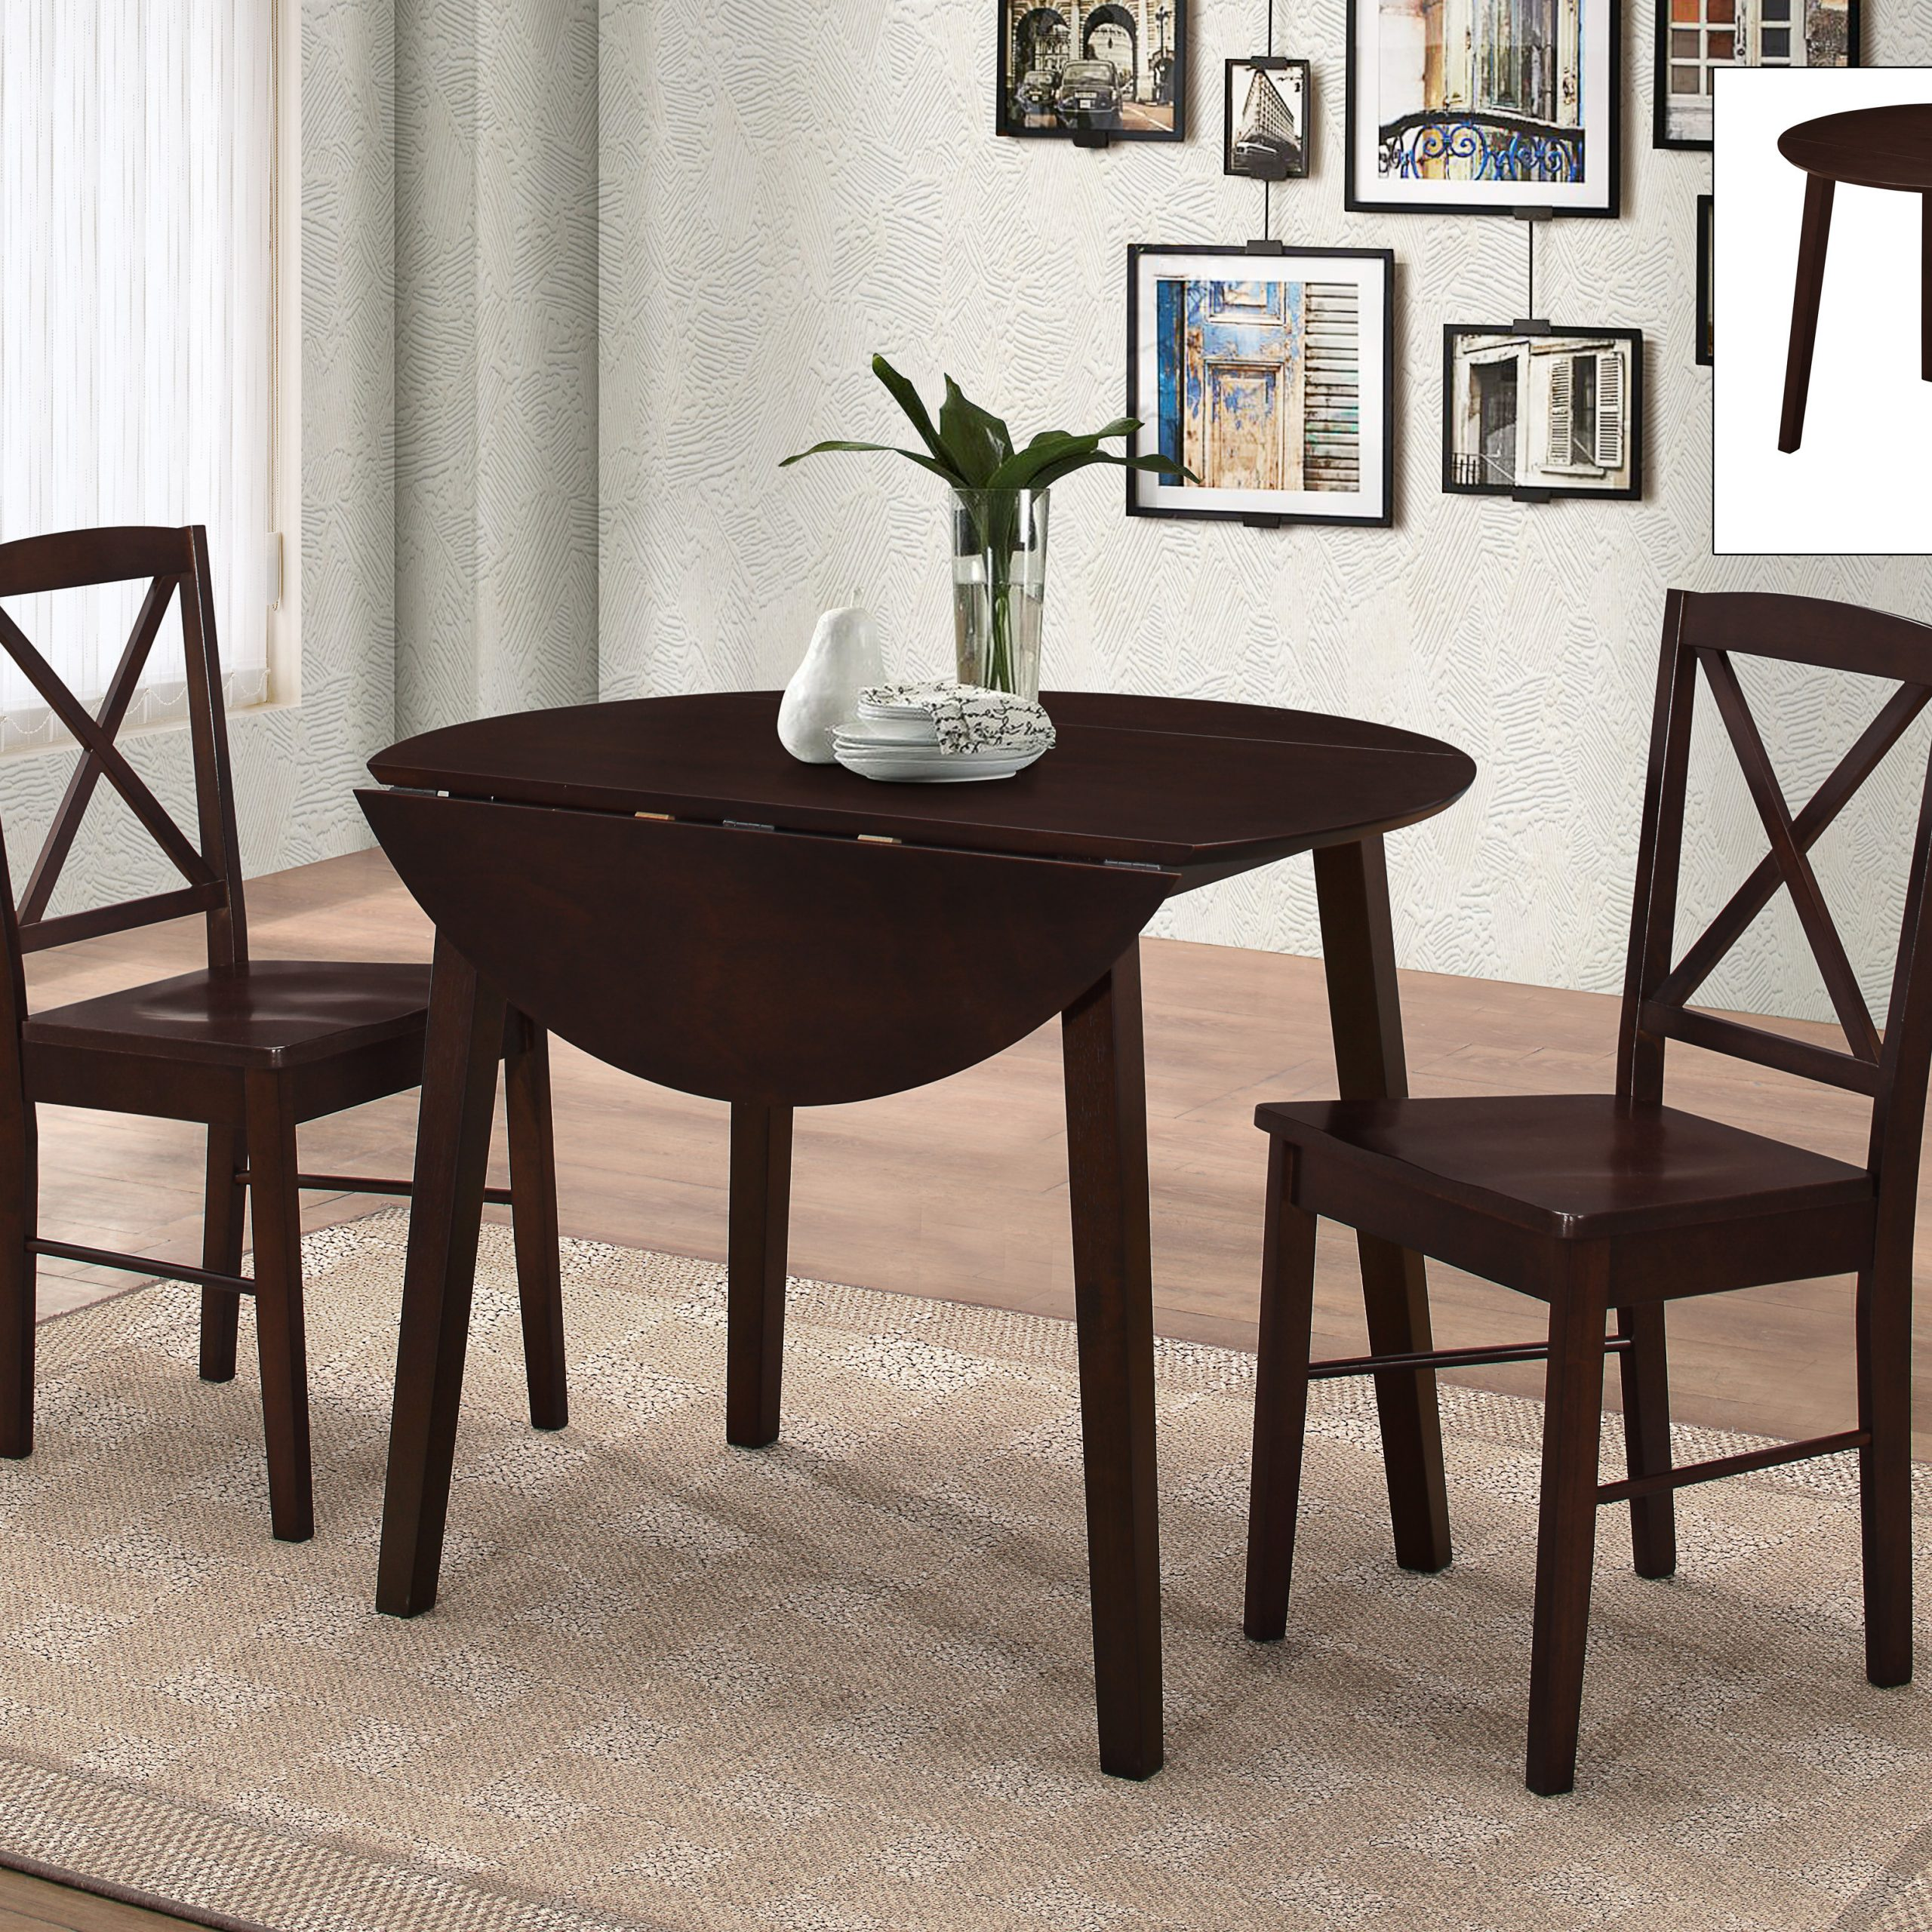 Gaines 3 Piece Kitchen Dining Set, Cappuccino Wood, 39 Throughout Latest Transitional 3 Piece Drop Leaf Casual Dining Tables Set (View 16 of 25)